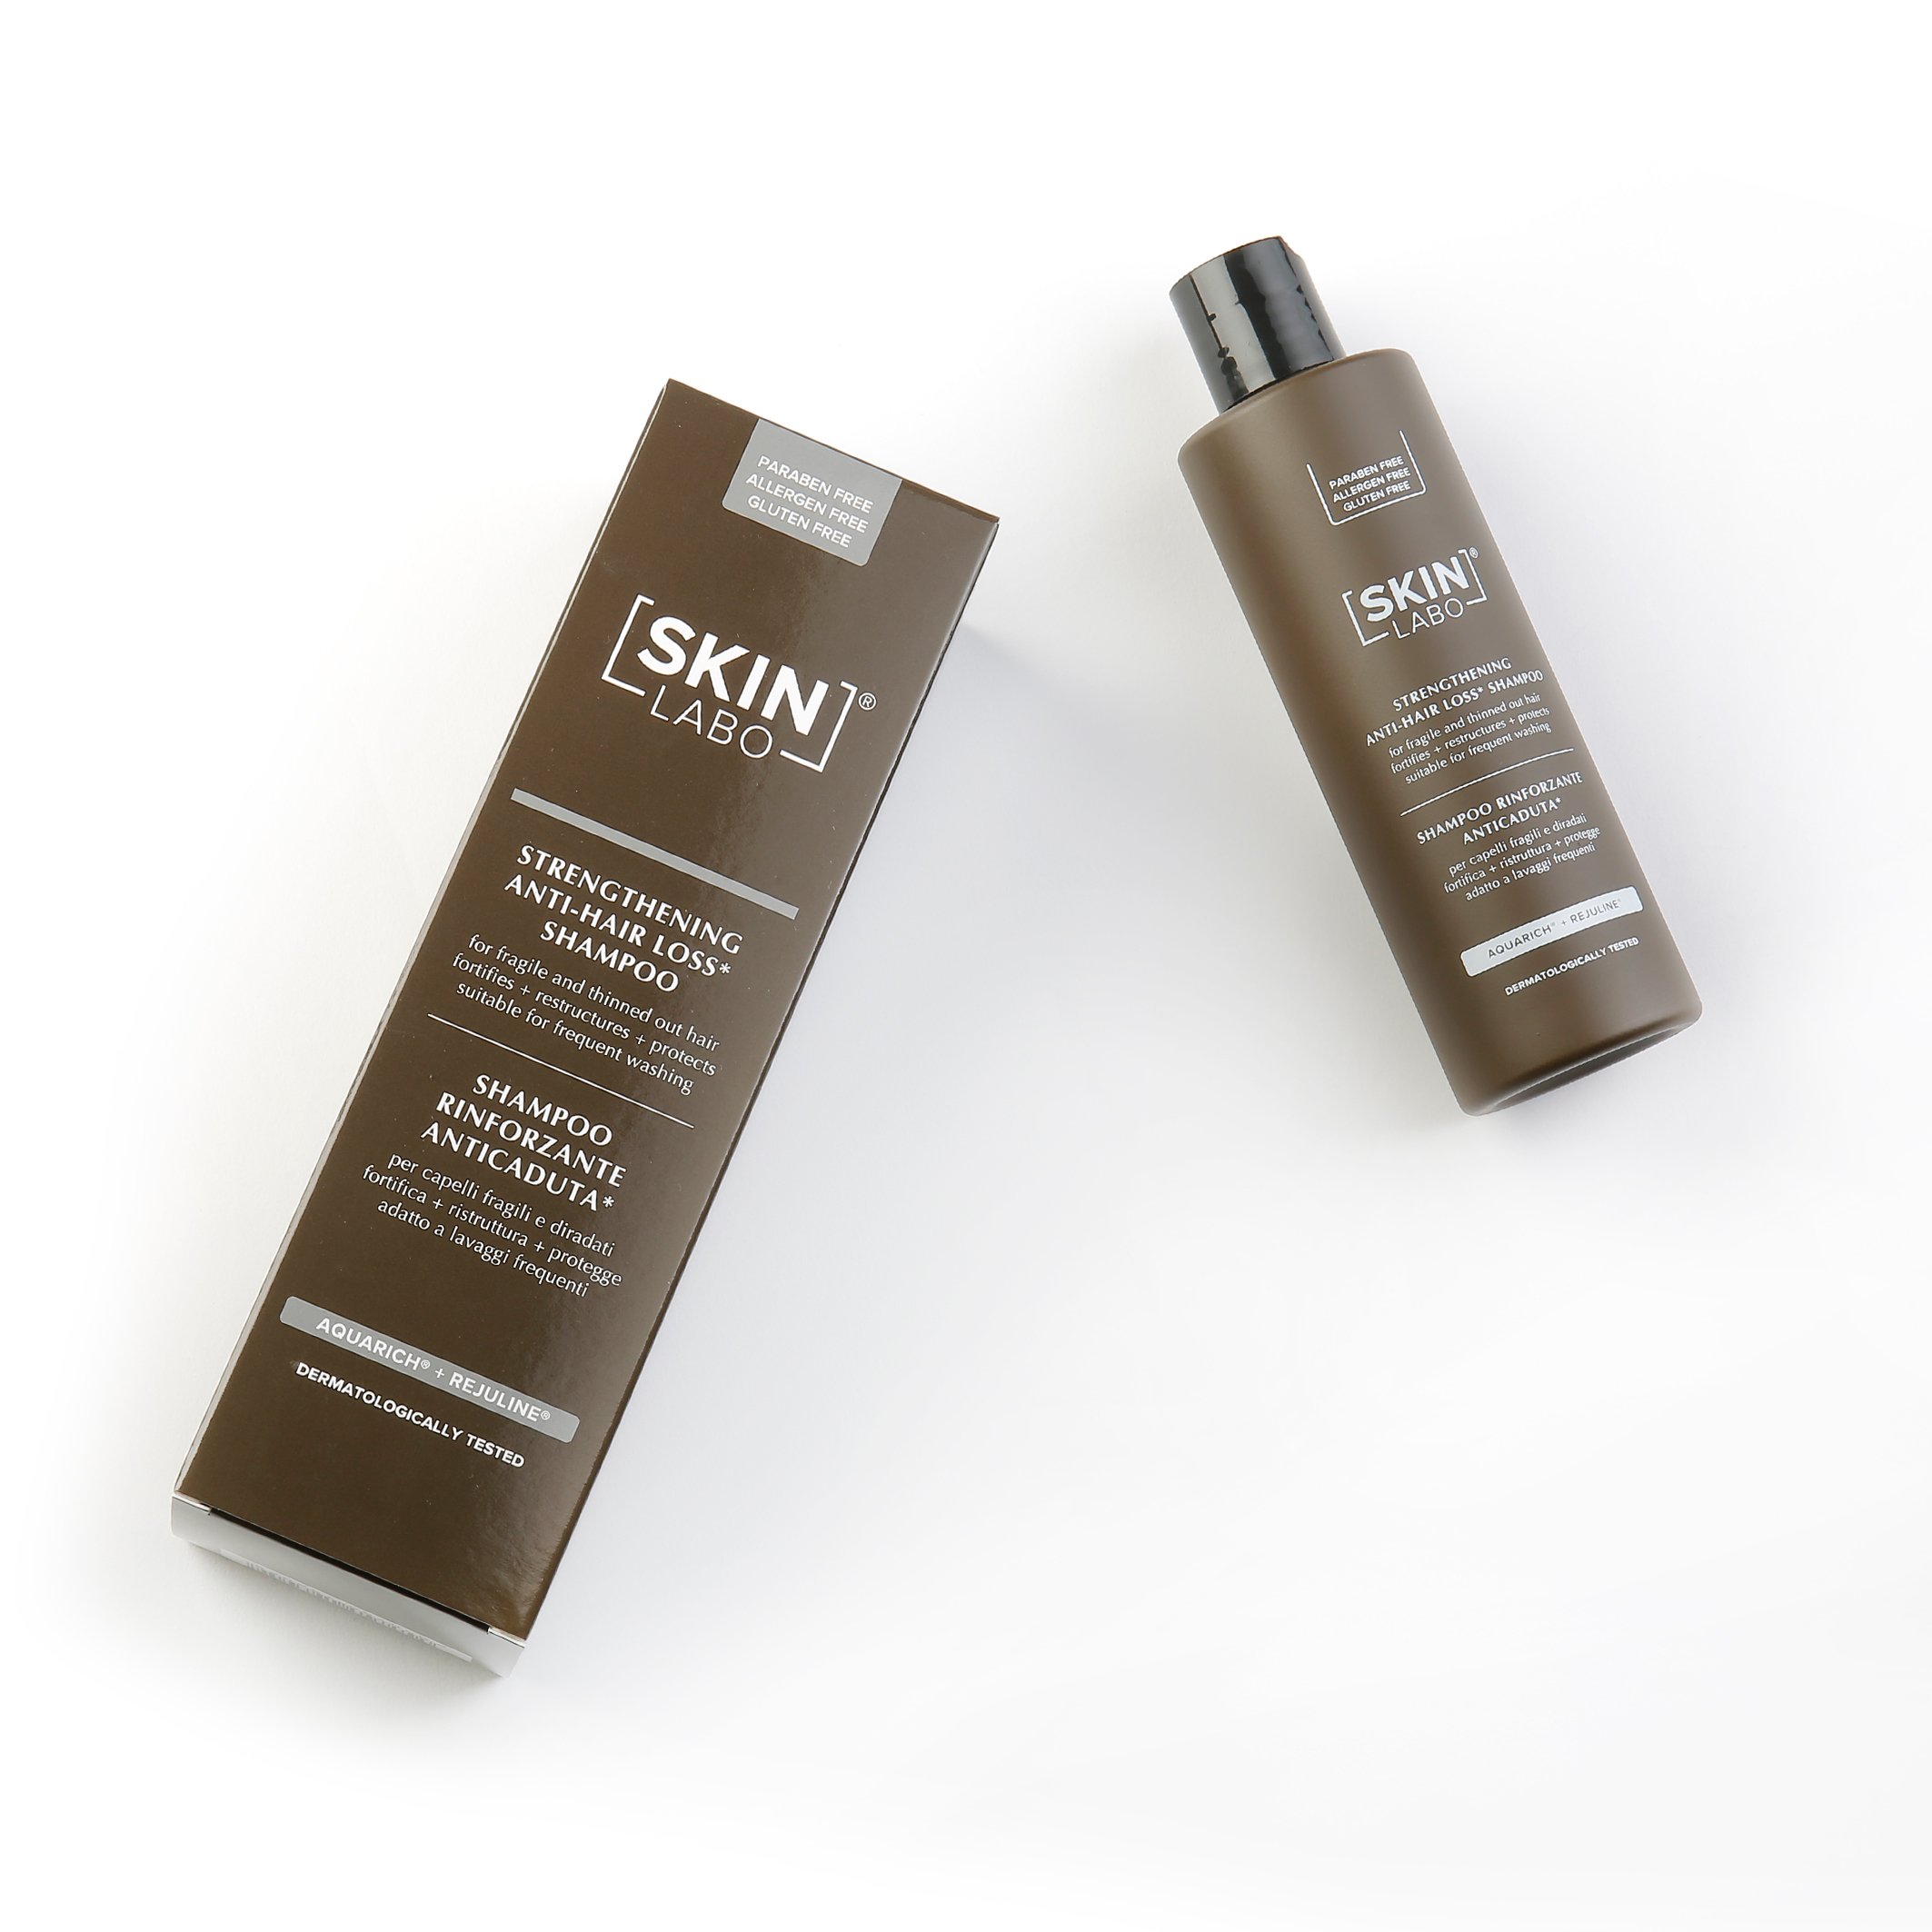 Uomo capelli SkinLabo ANTI-HAIR LOSS SHAMPOO SLM HA N0001